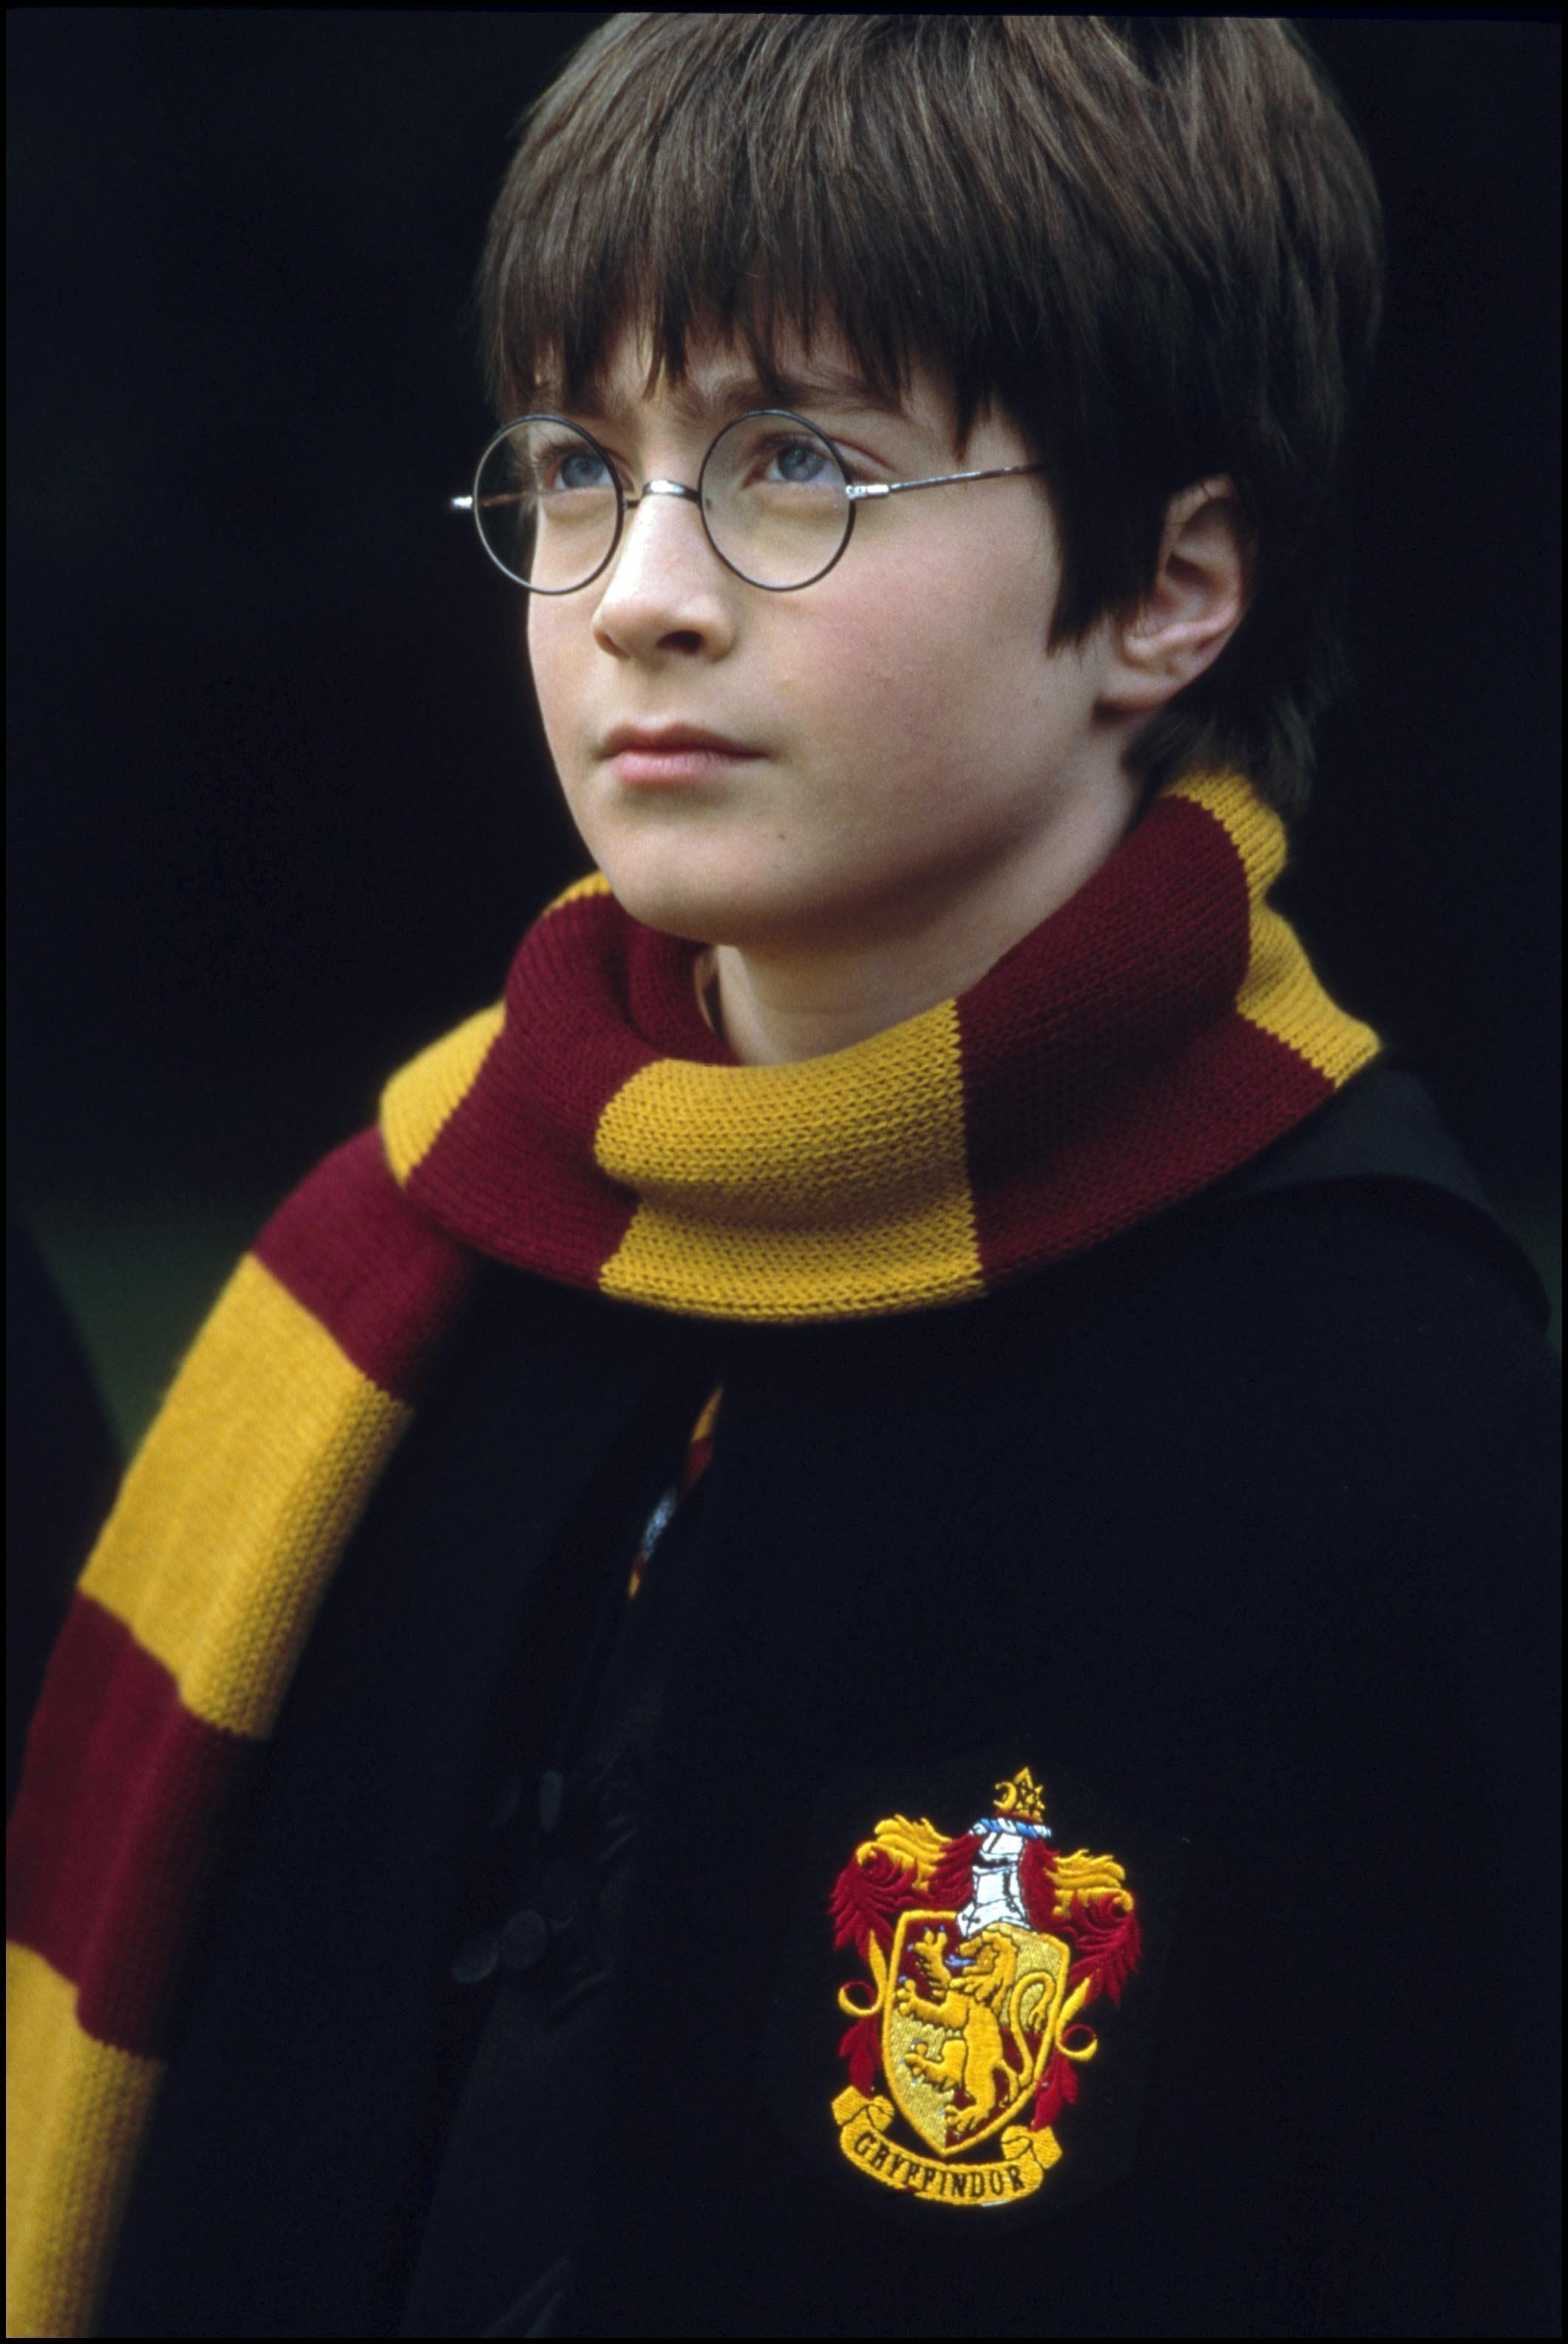 Even Daniel Radcliffe Is Into This 'Harry Potter' Theory About The